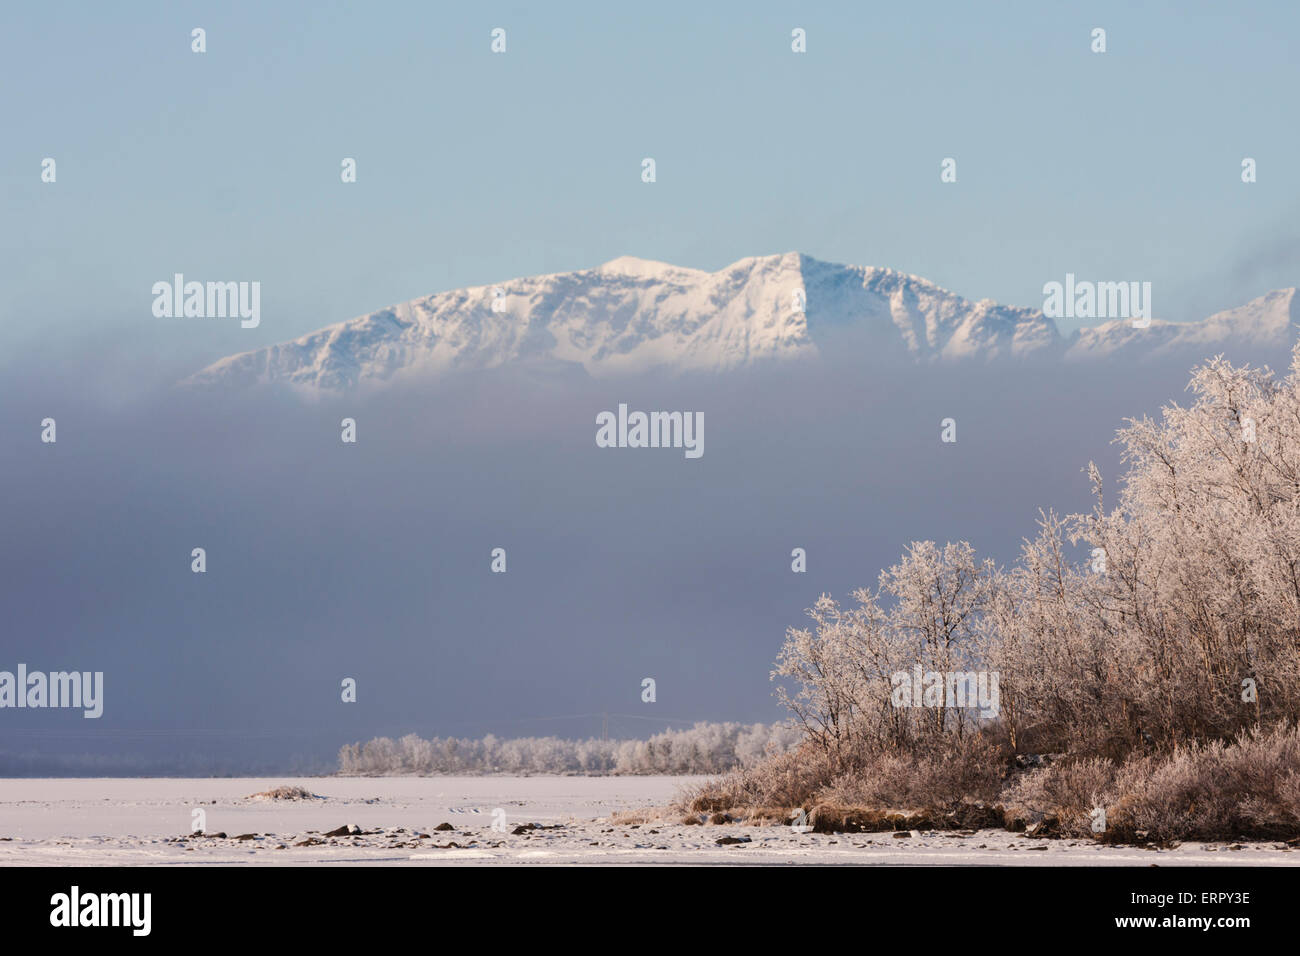 The top of mount Kebnekaise seen above a wall of fog in early winter in october at Kiruna, Sweden, Swedish lapland - Stock Image